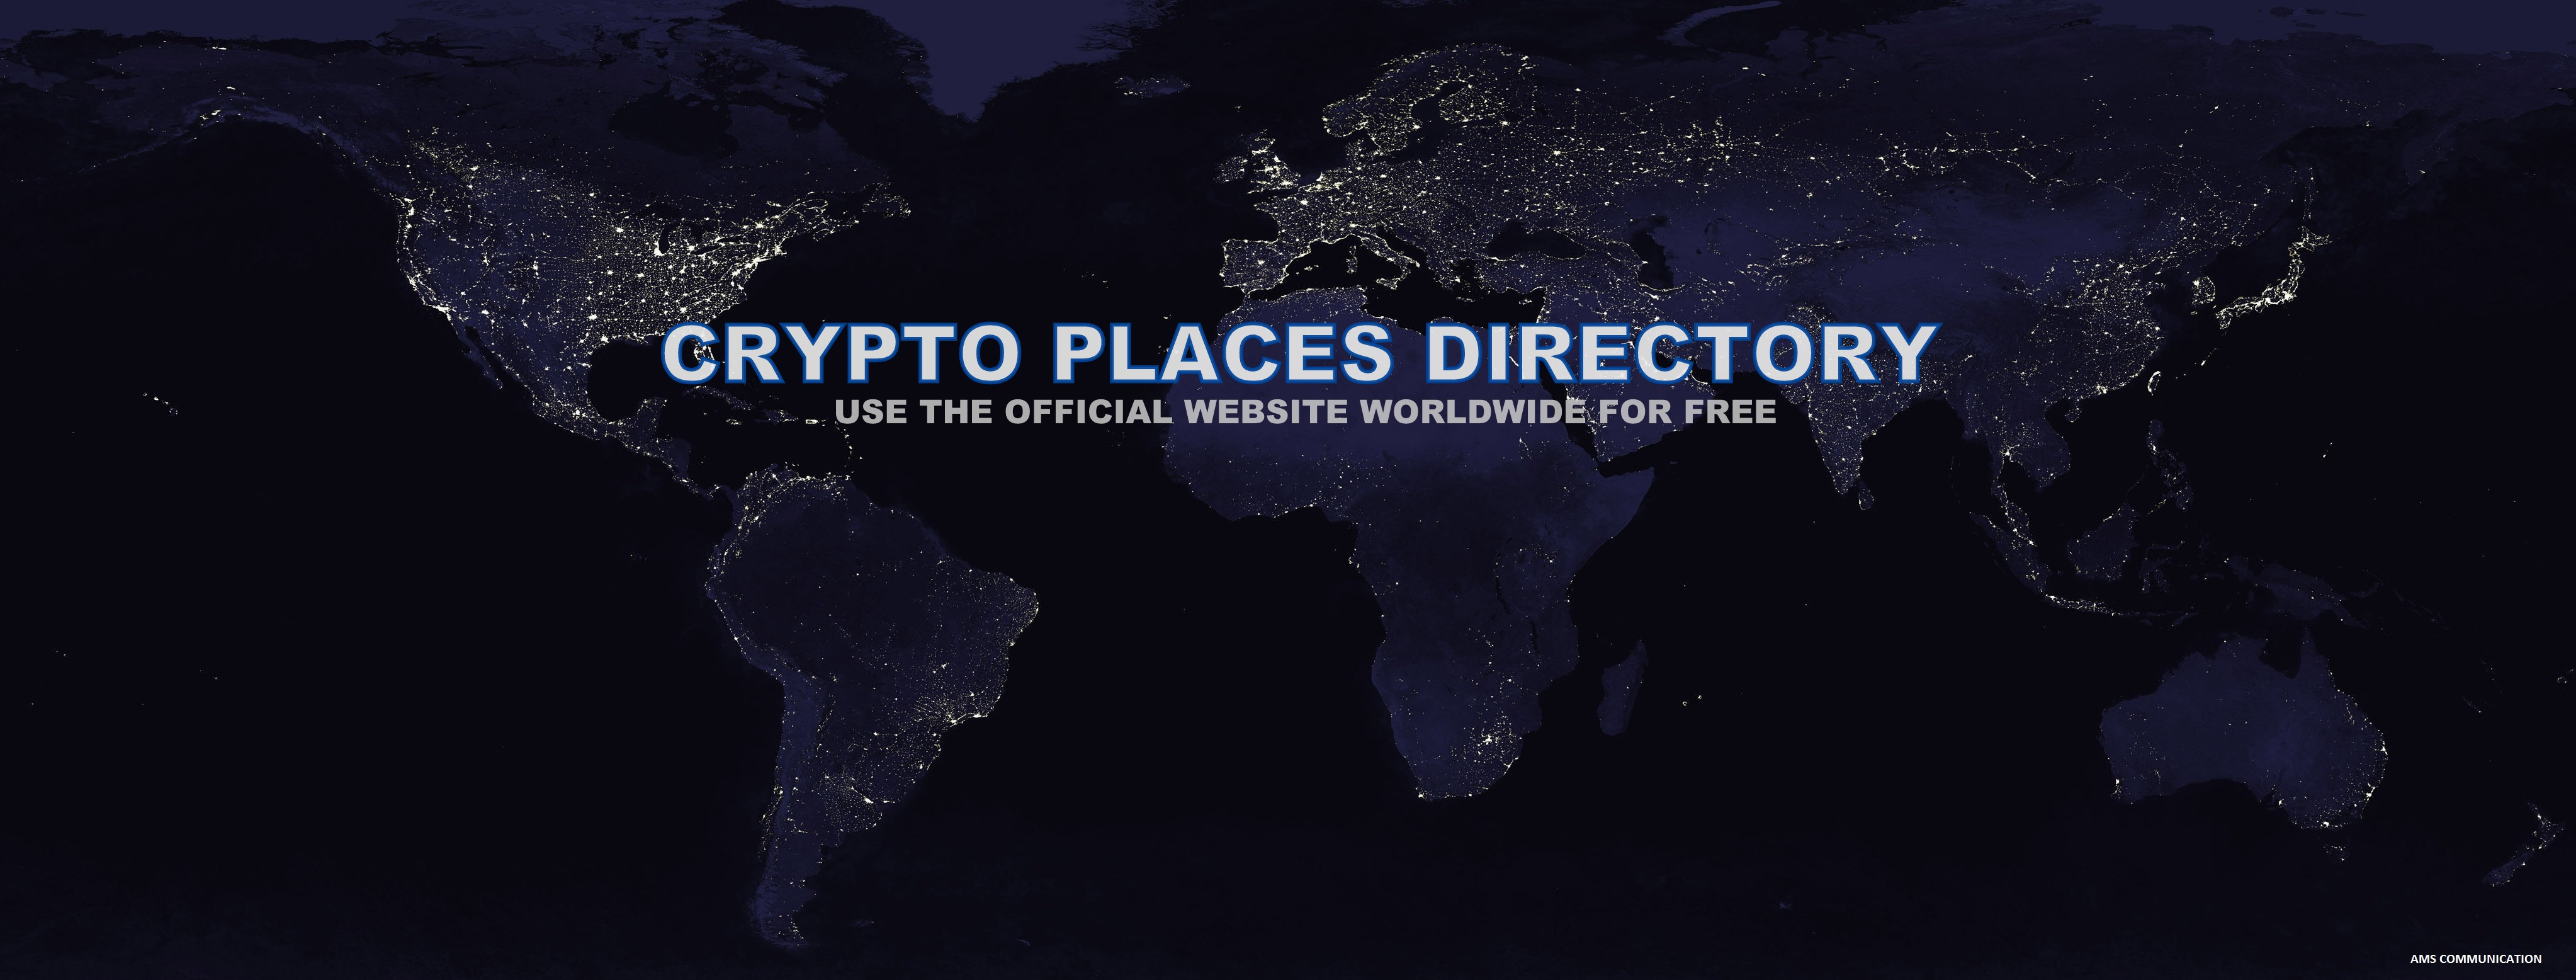 The next Crypto-Places Directory website updates